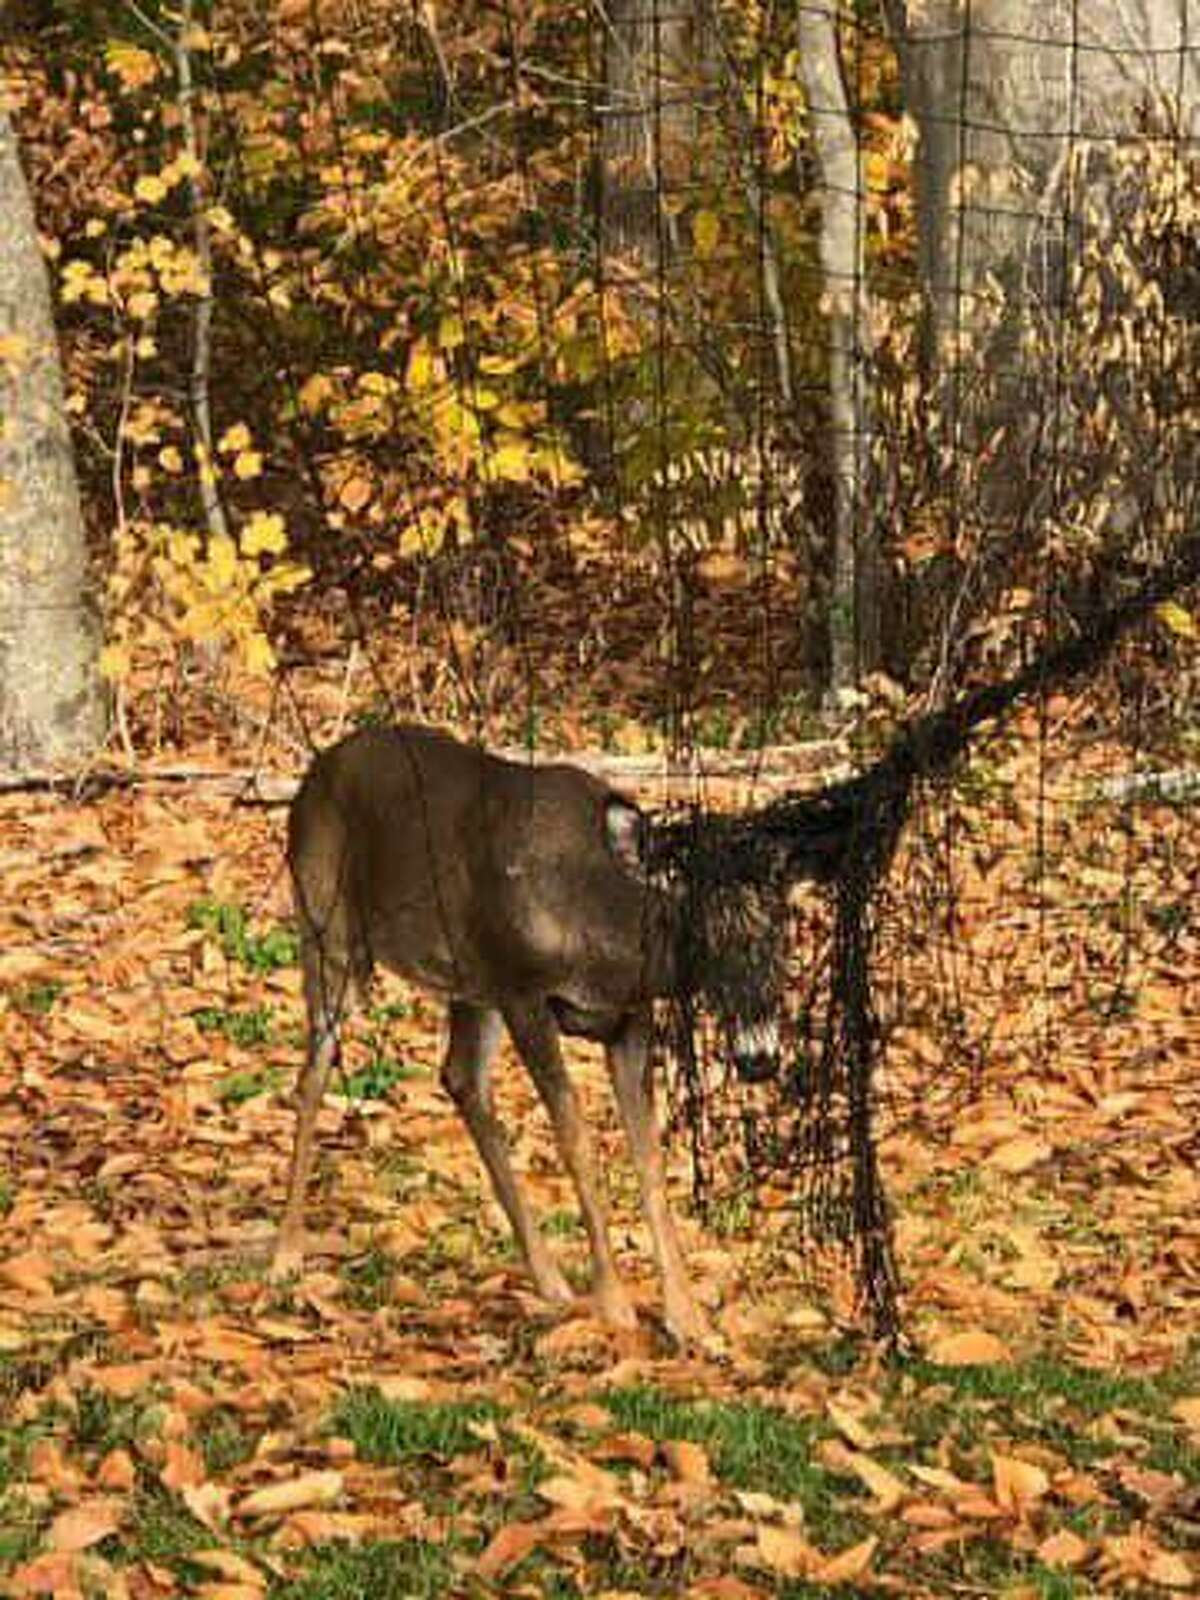 A deer tangled in netting in Manchester, Conn., on Sunday, Nov. 1, 2020, was freed by some officers and civilians.